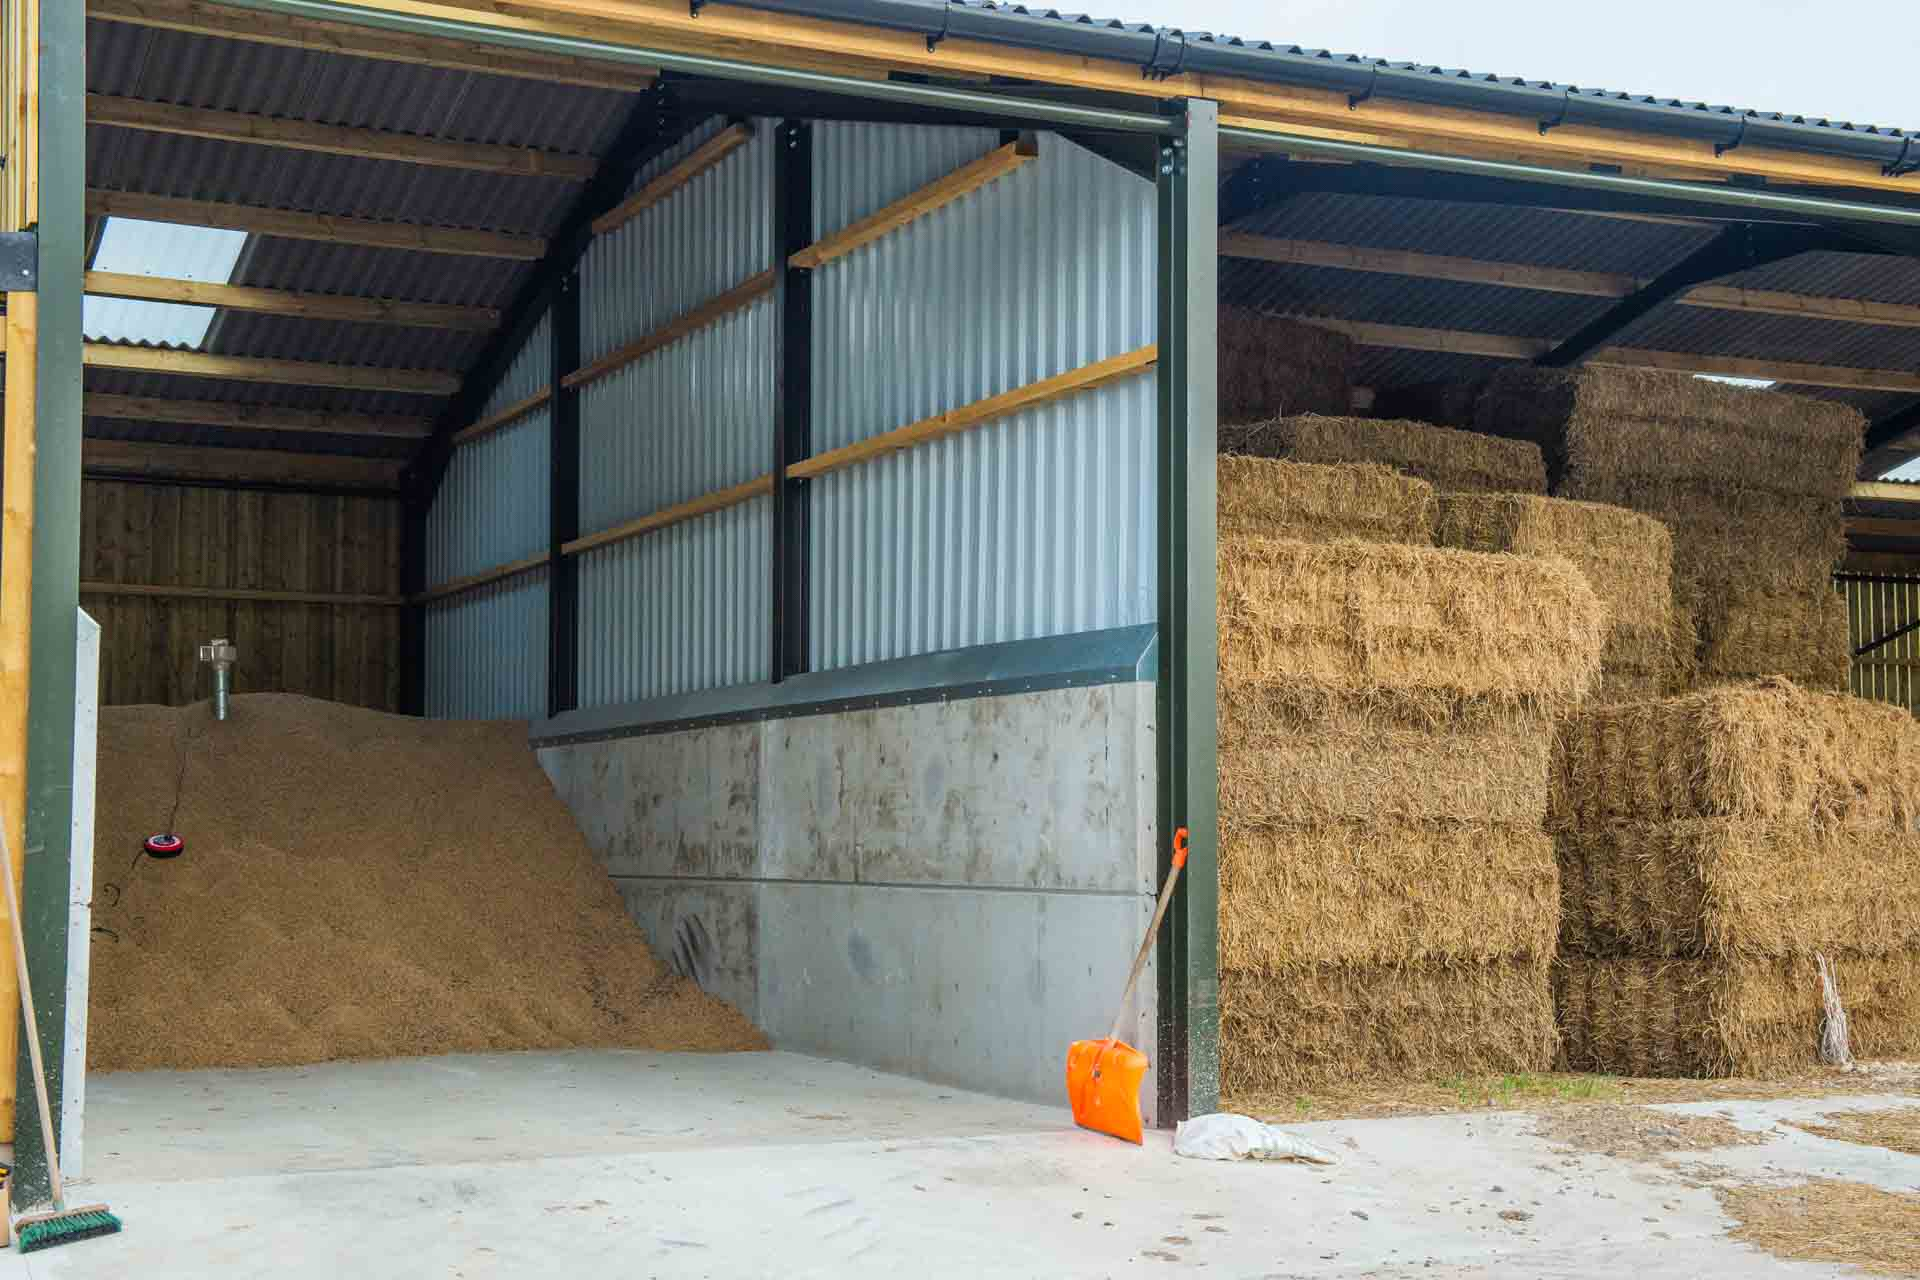 The new barn, holding rolled barley, next door to the straw